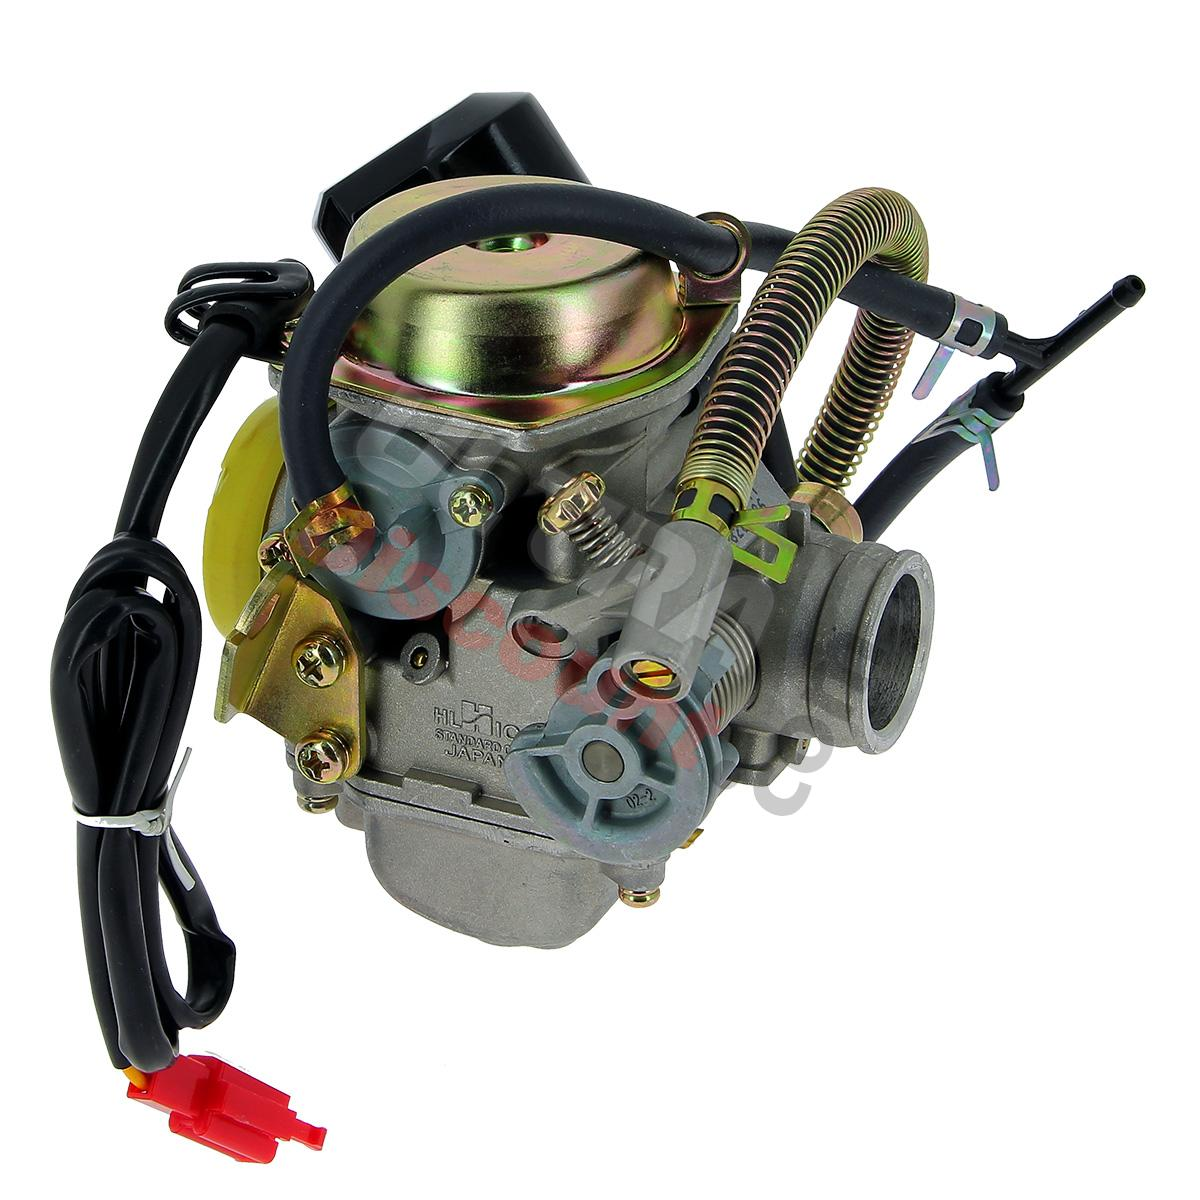 carburetor for jonway scooter gt 125 jonway 125cc yy125t jonway scooter parts ud. Black Bedroom Furniture Sets. Home Design Ideas